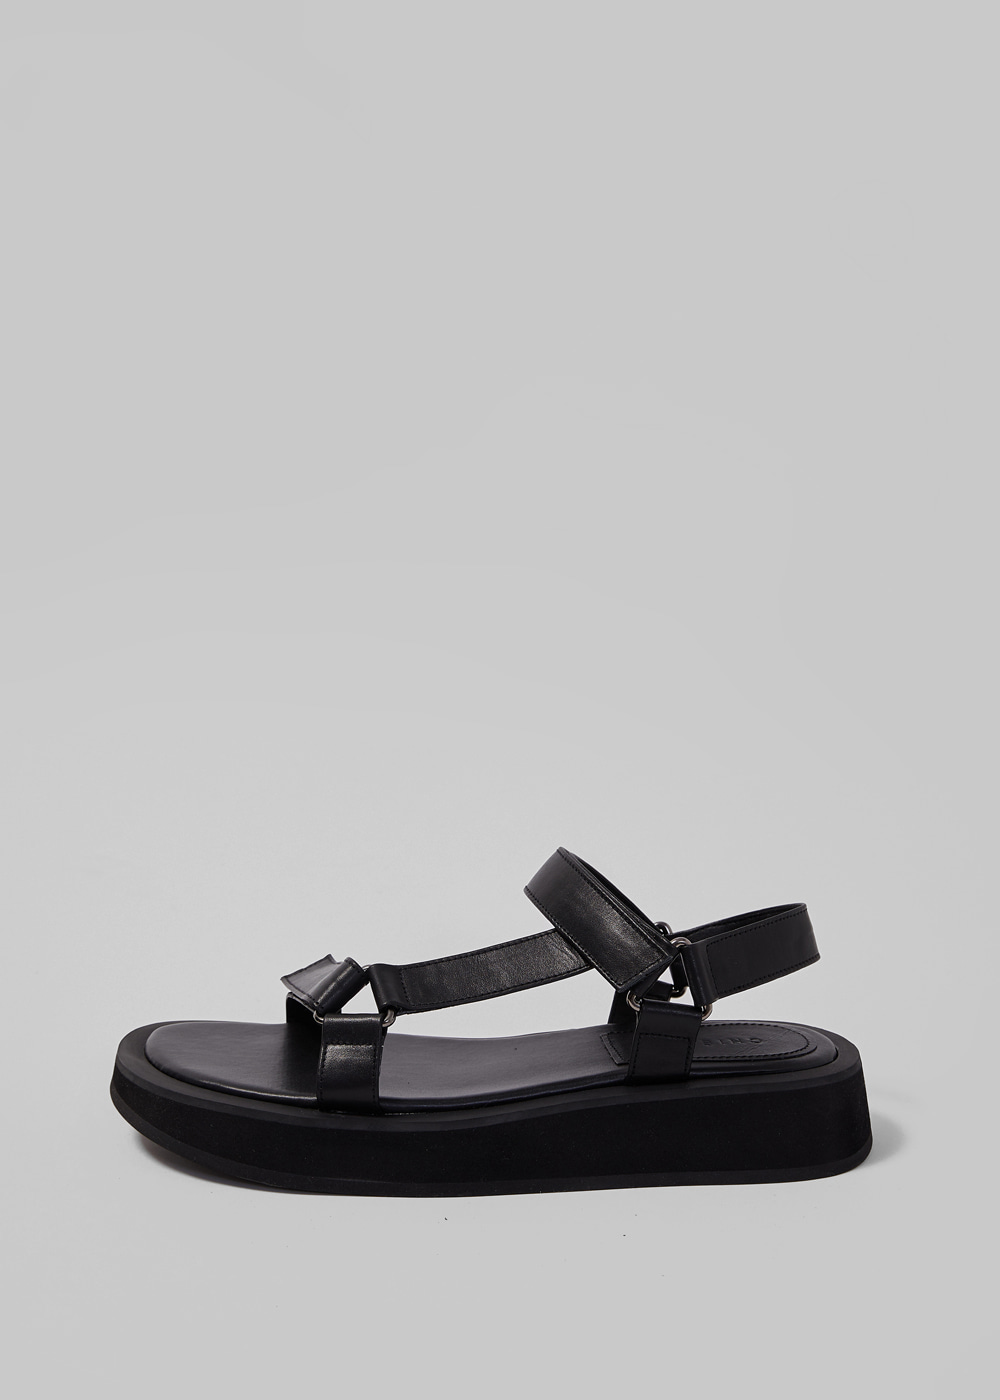 GO-OUT SANDAL [C1S06 BK]